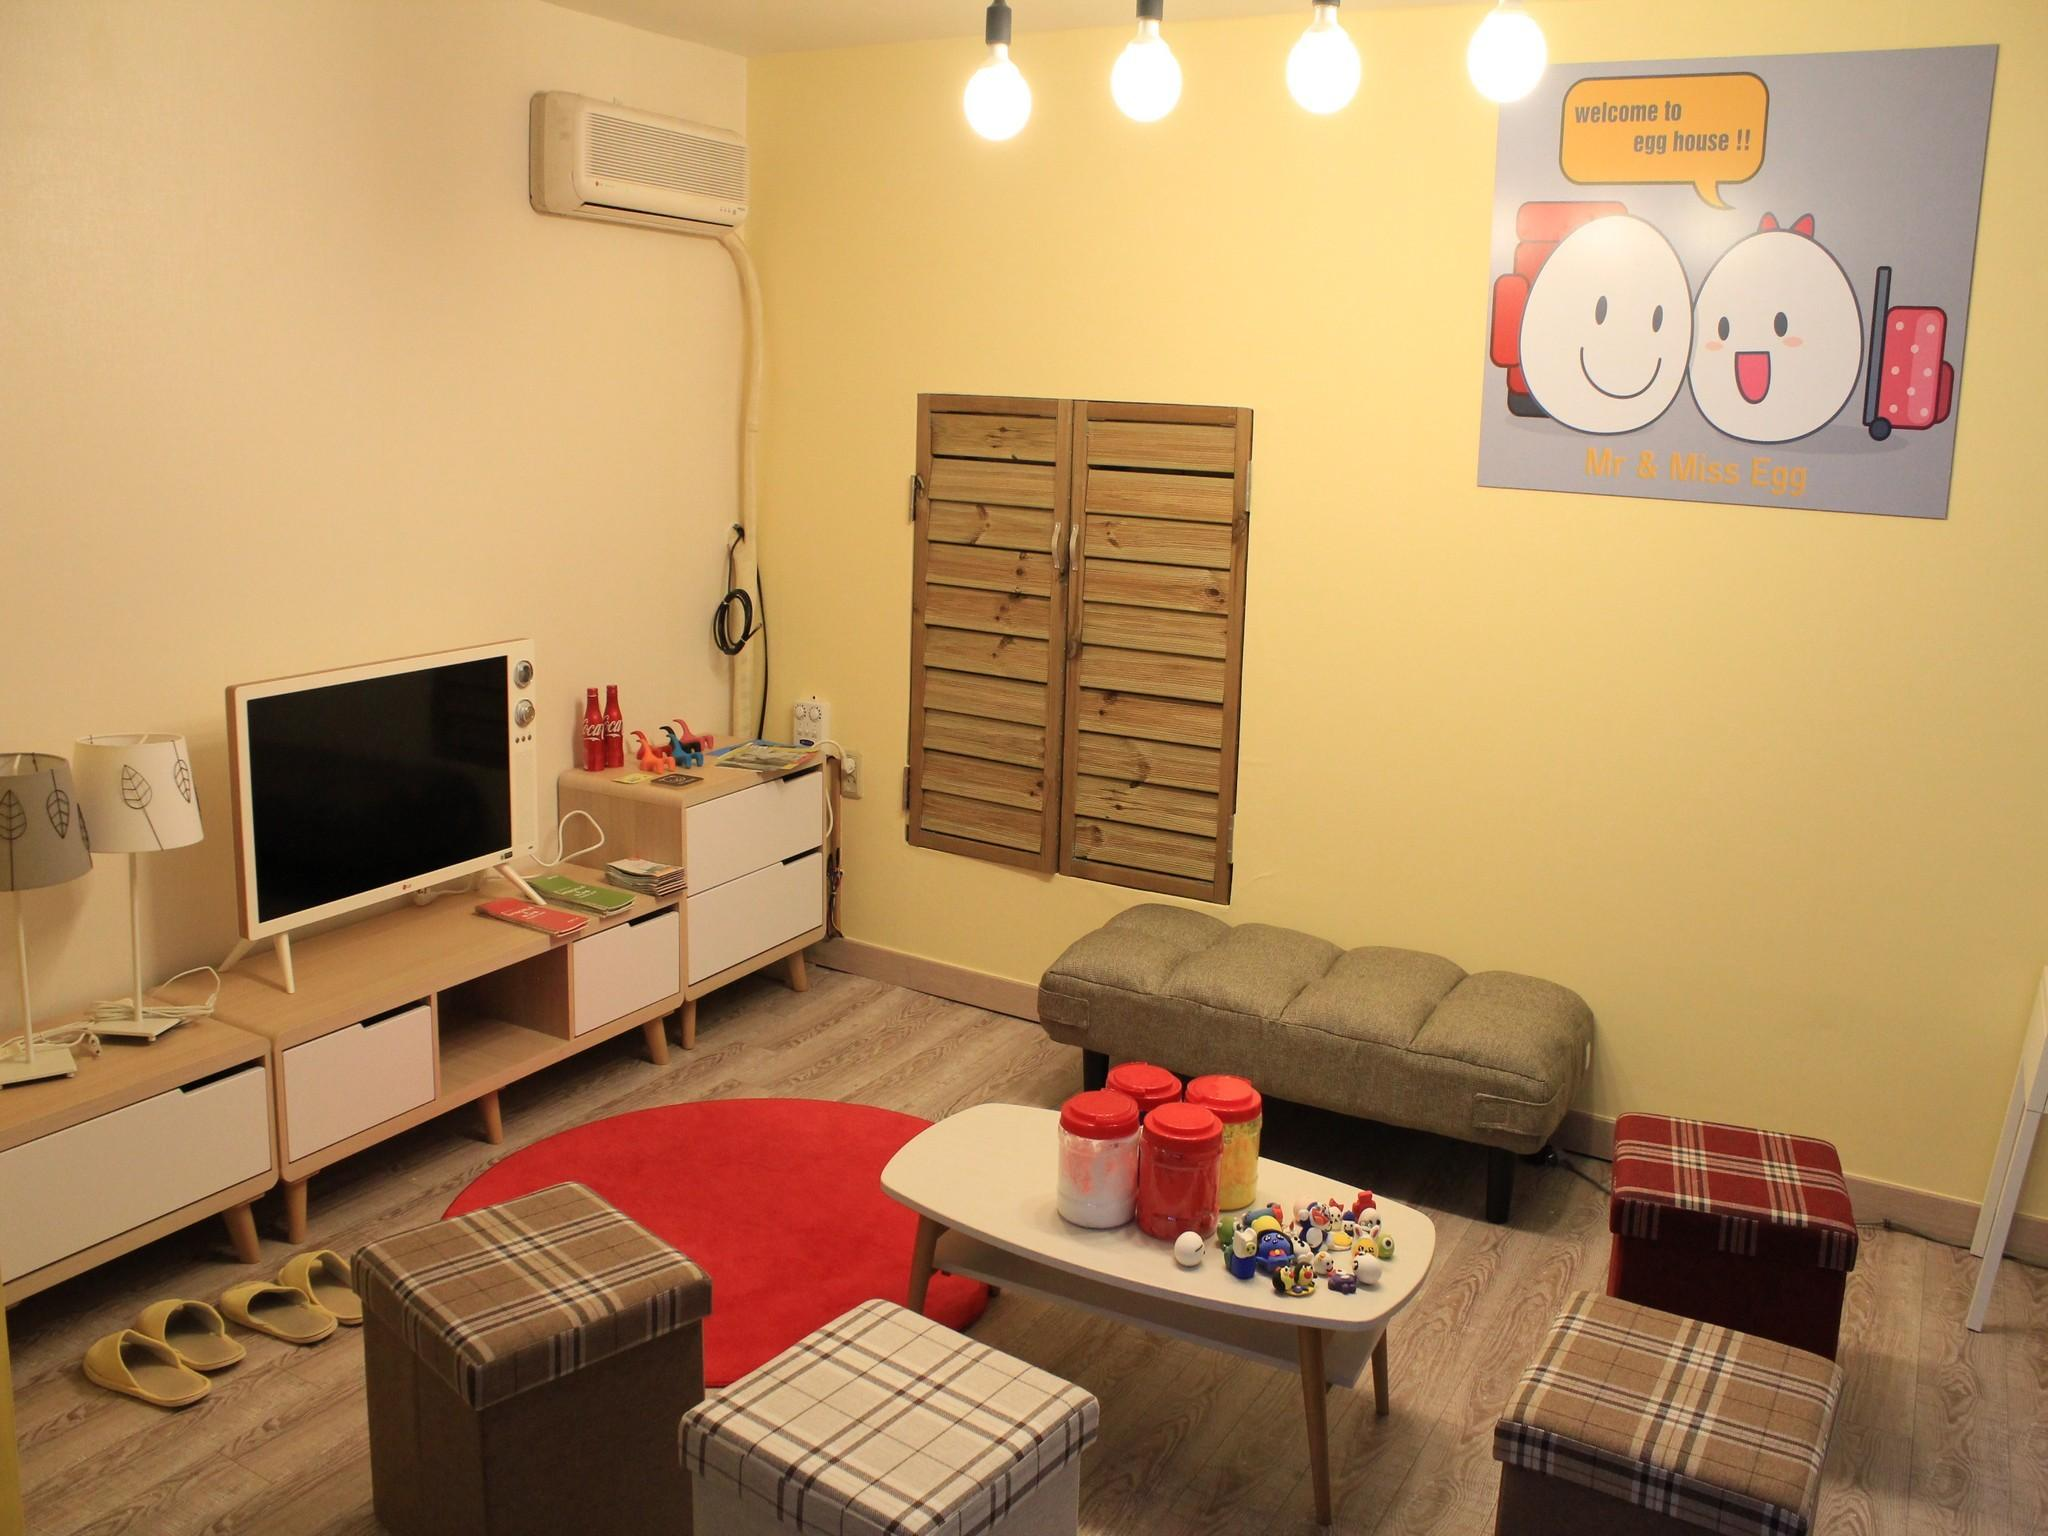 Quarto Familiar com casa de banho partilhada (Family Room with Shared Bathroom)